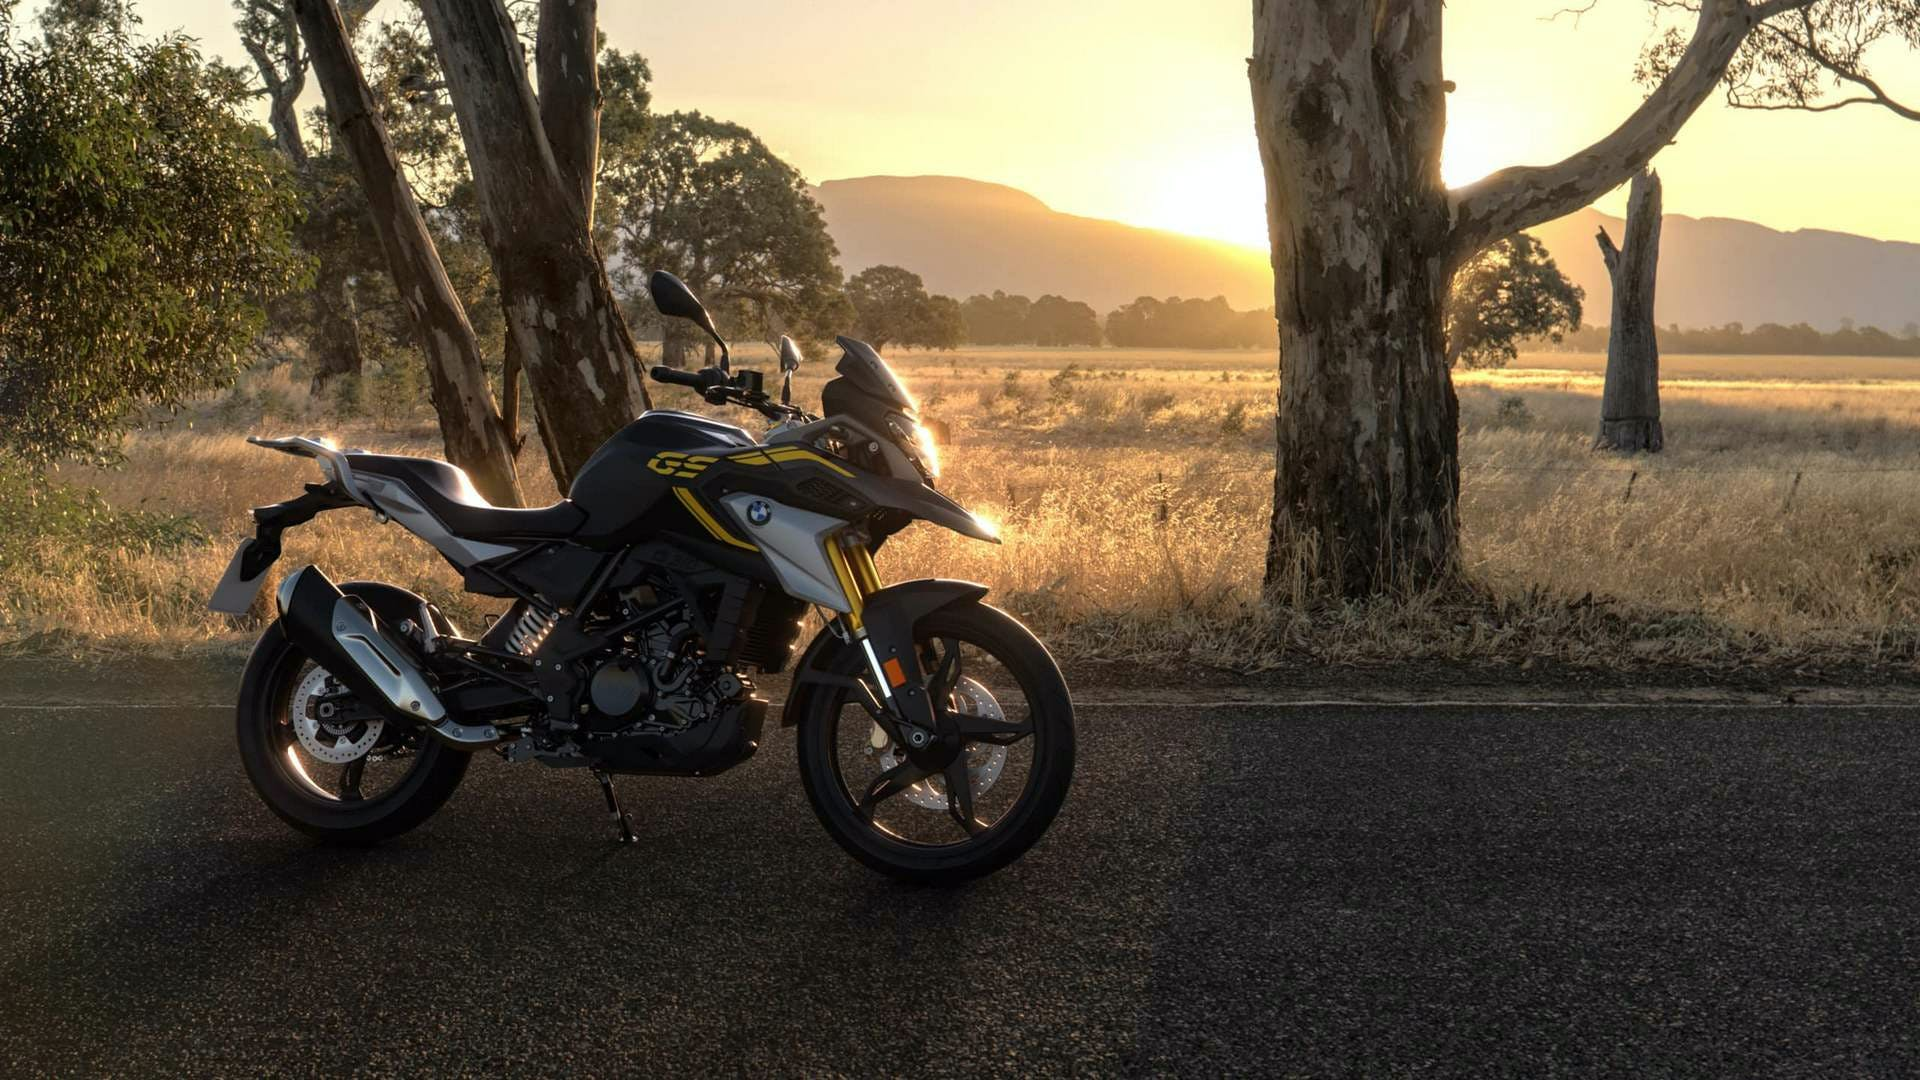 BMW G 310 GS 40 Years GS Edition, parked